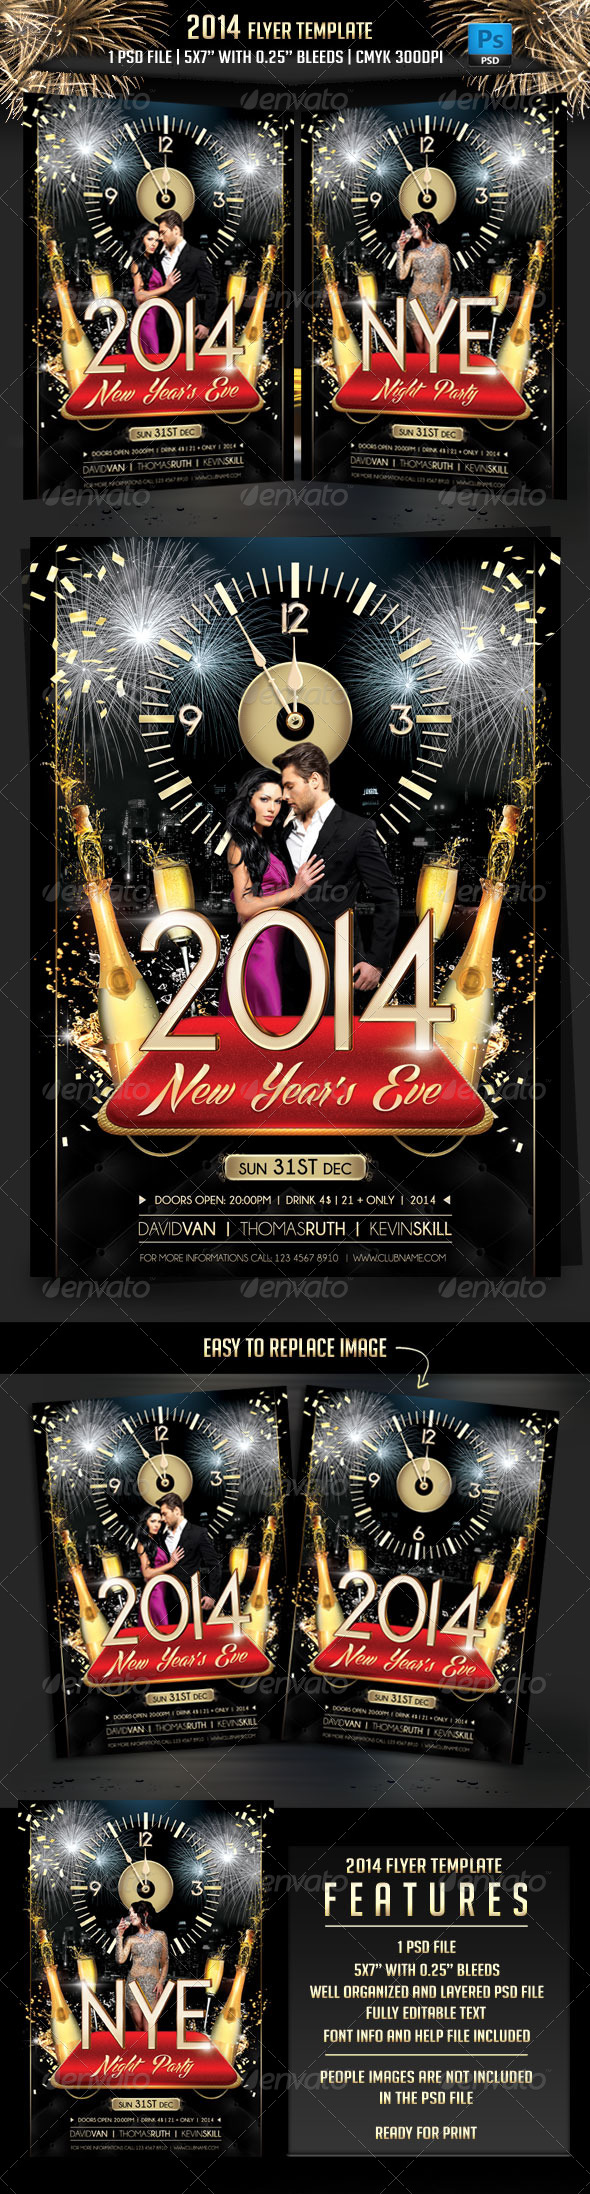 GraphicRiver 2014 Flyer Template 6234522